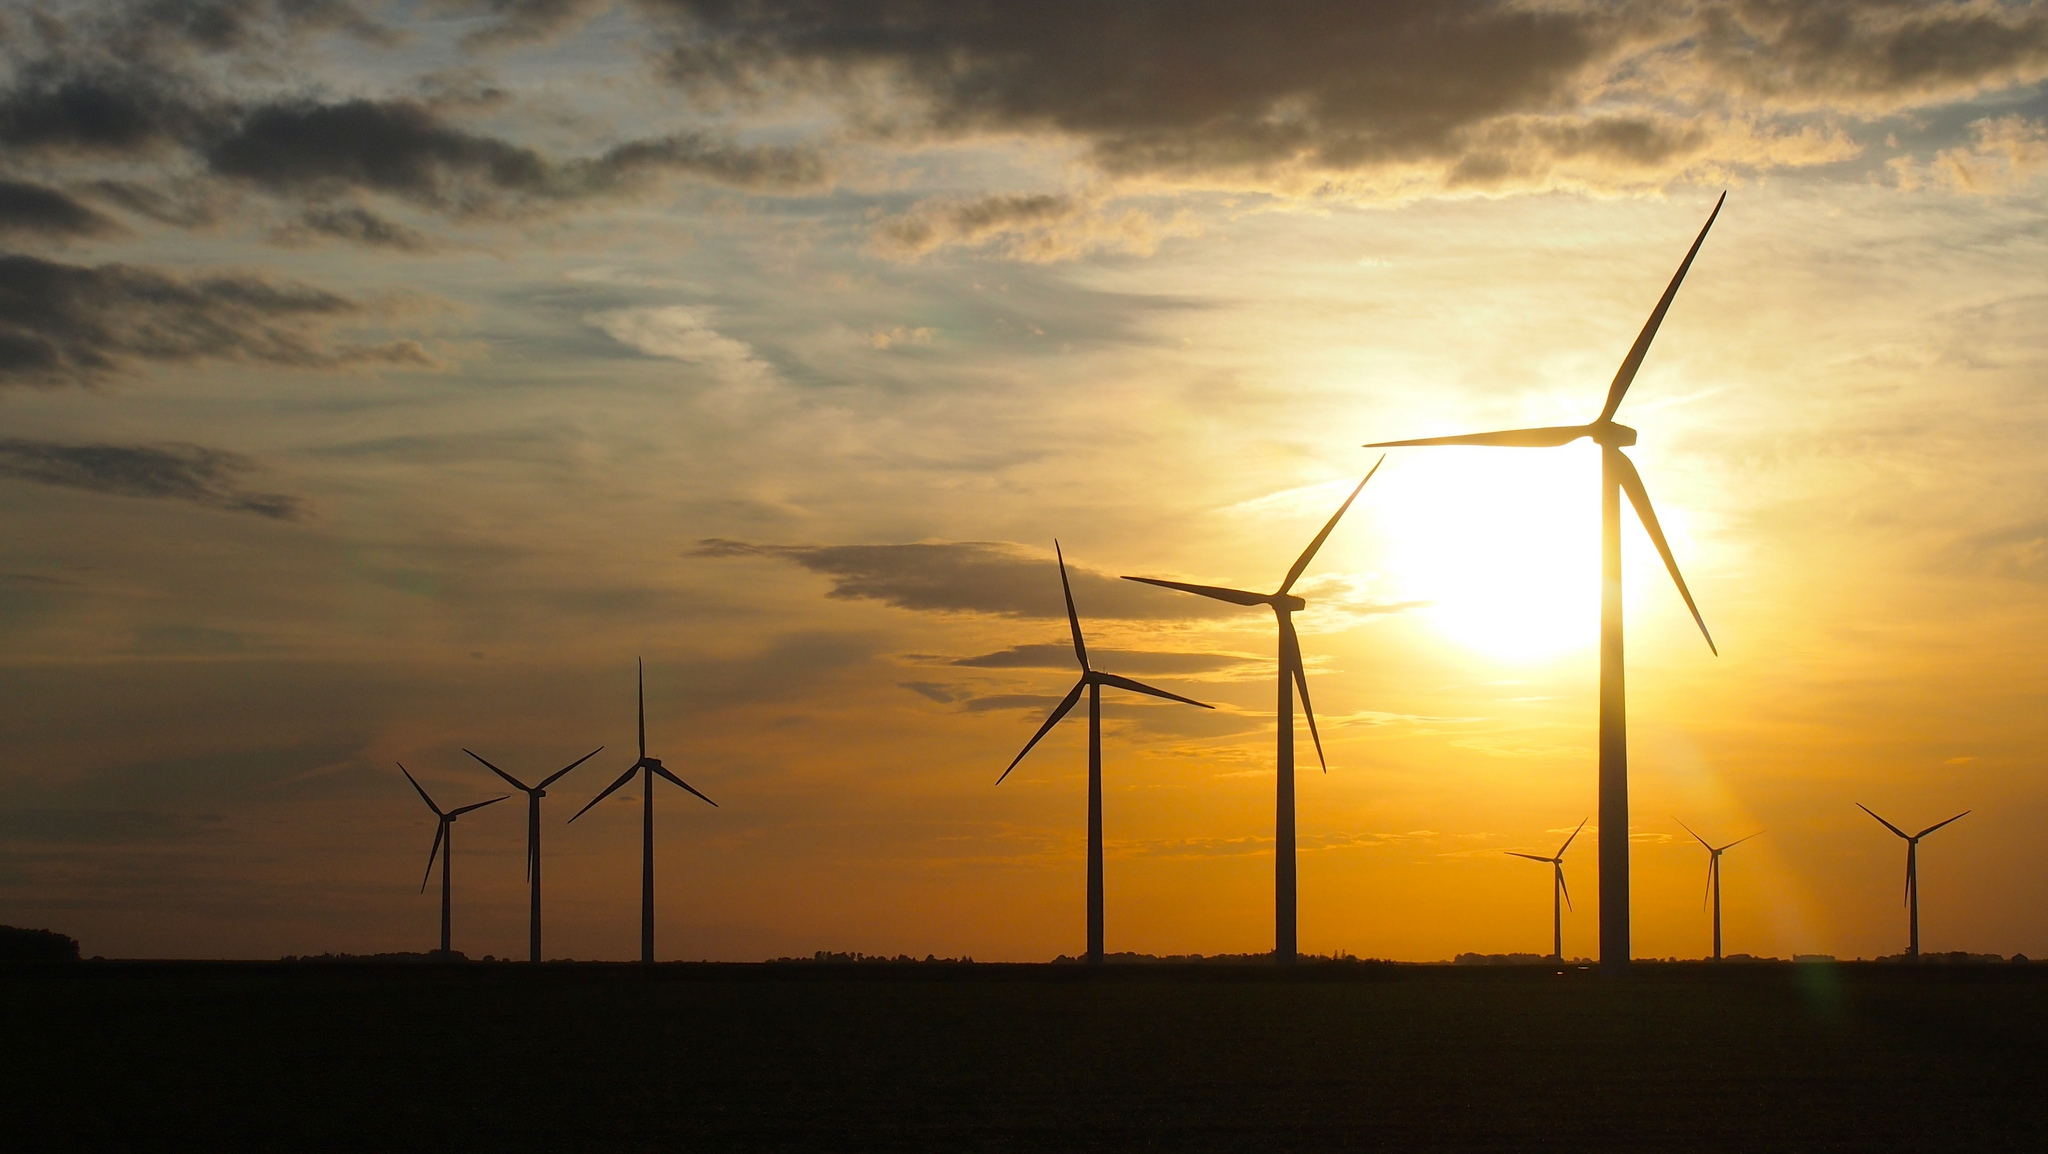 Iowa leads the country in in percentage of electricity generated by wind energy (Samir Luther/Flickr)